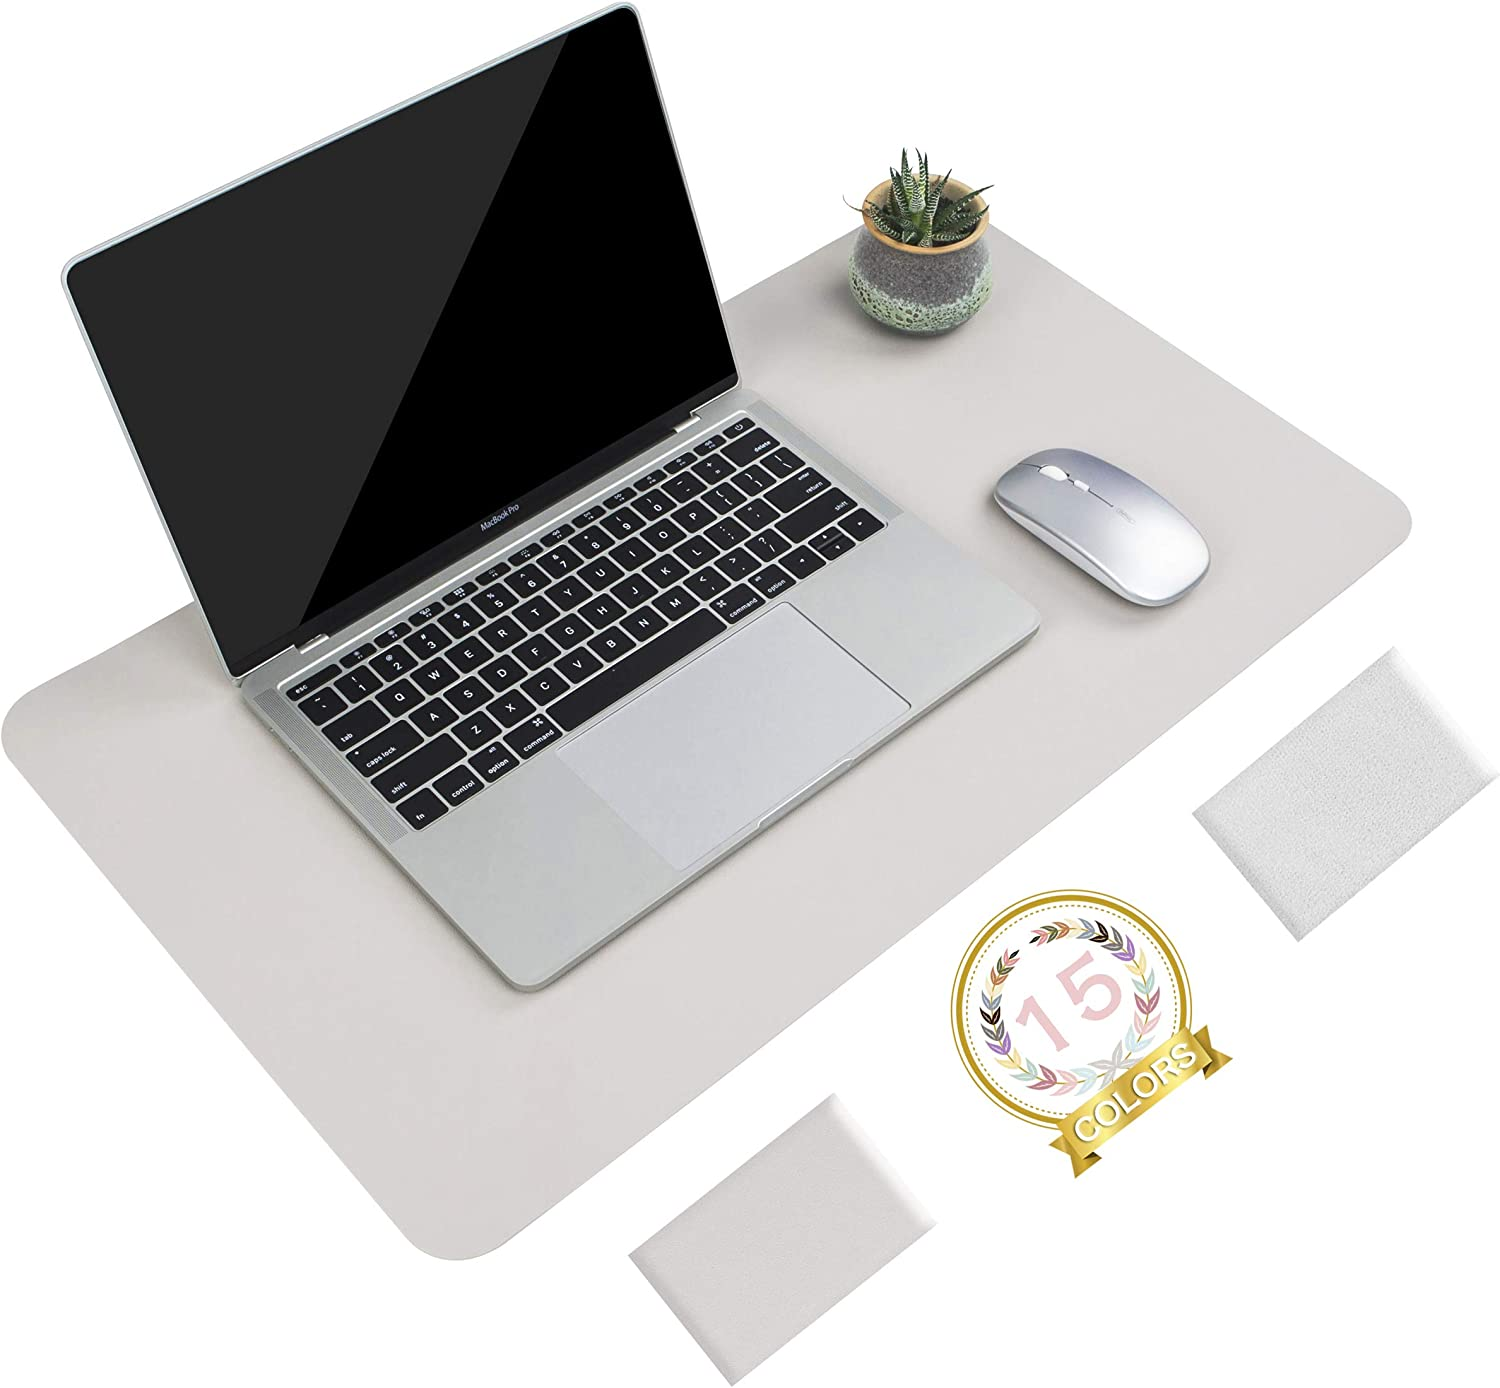 Non-Slip Desk Pad, Waterproof PVC Leather Desk Table Protector, Ultra Thin Large Mouse Pad, Easy Clean Laptop Desk Writing Mat for Office Work/Home/Decor (Apricot Gray, 23.6